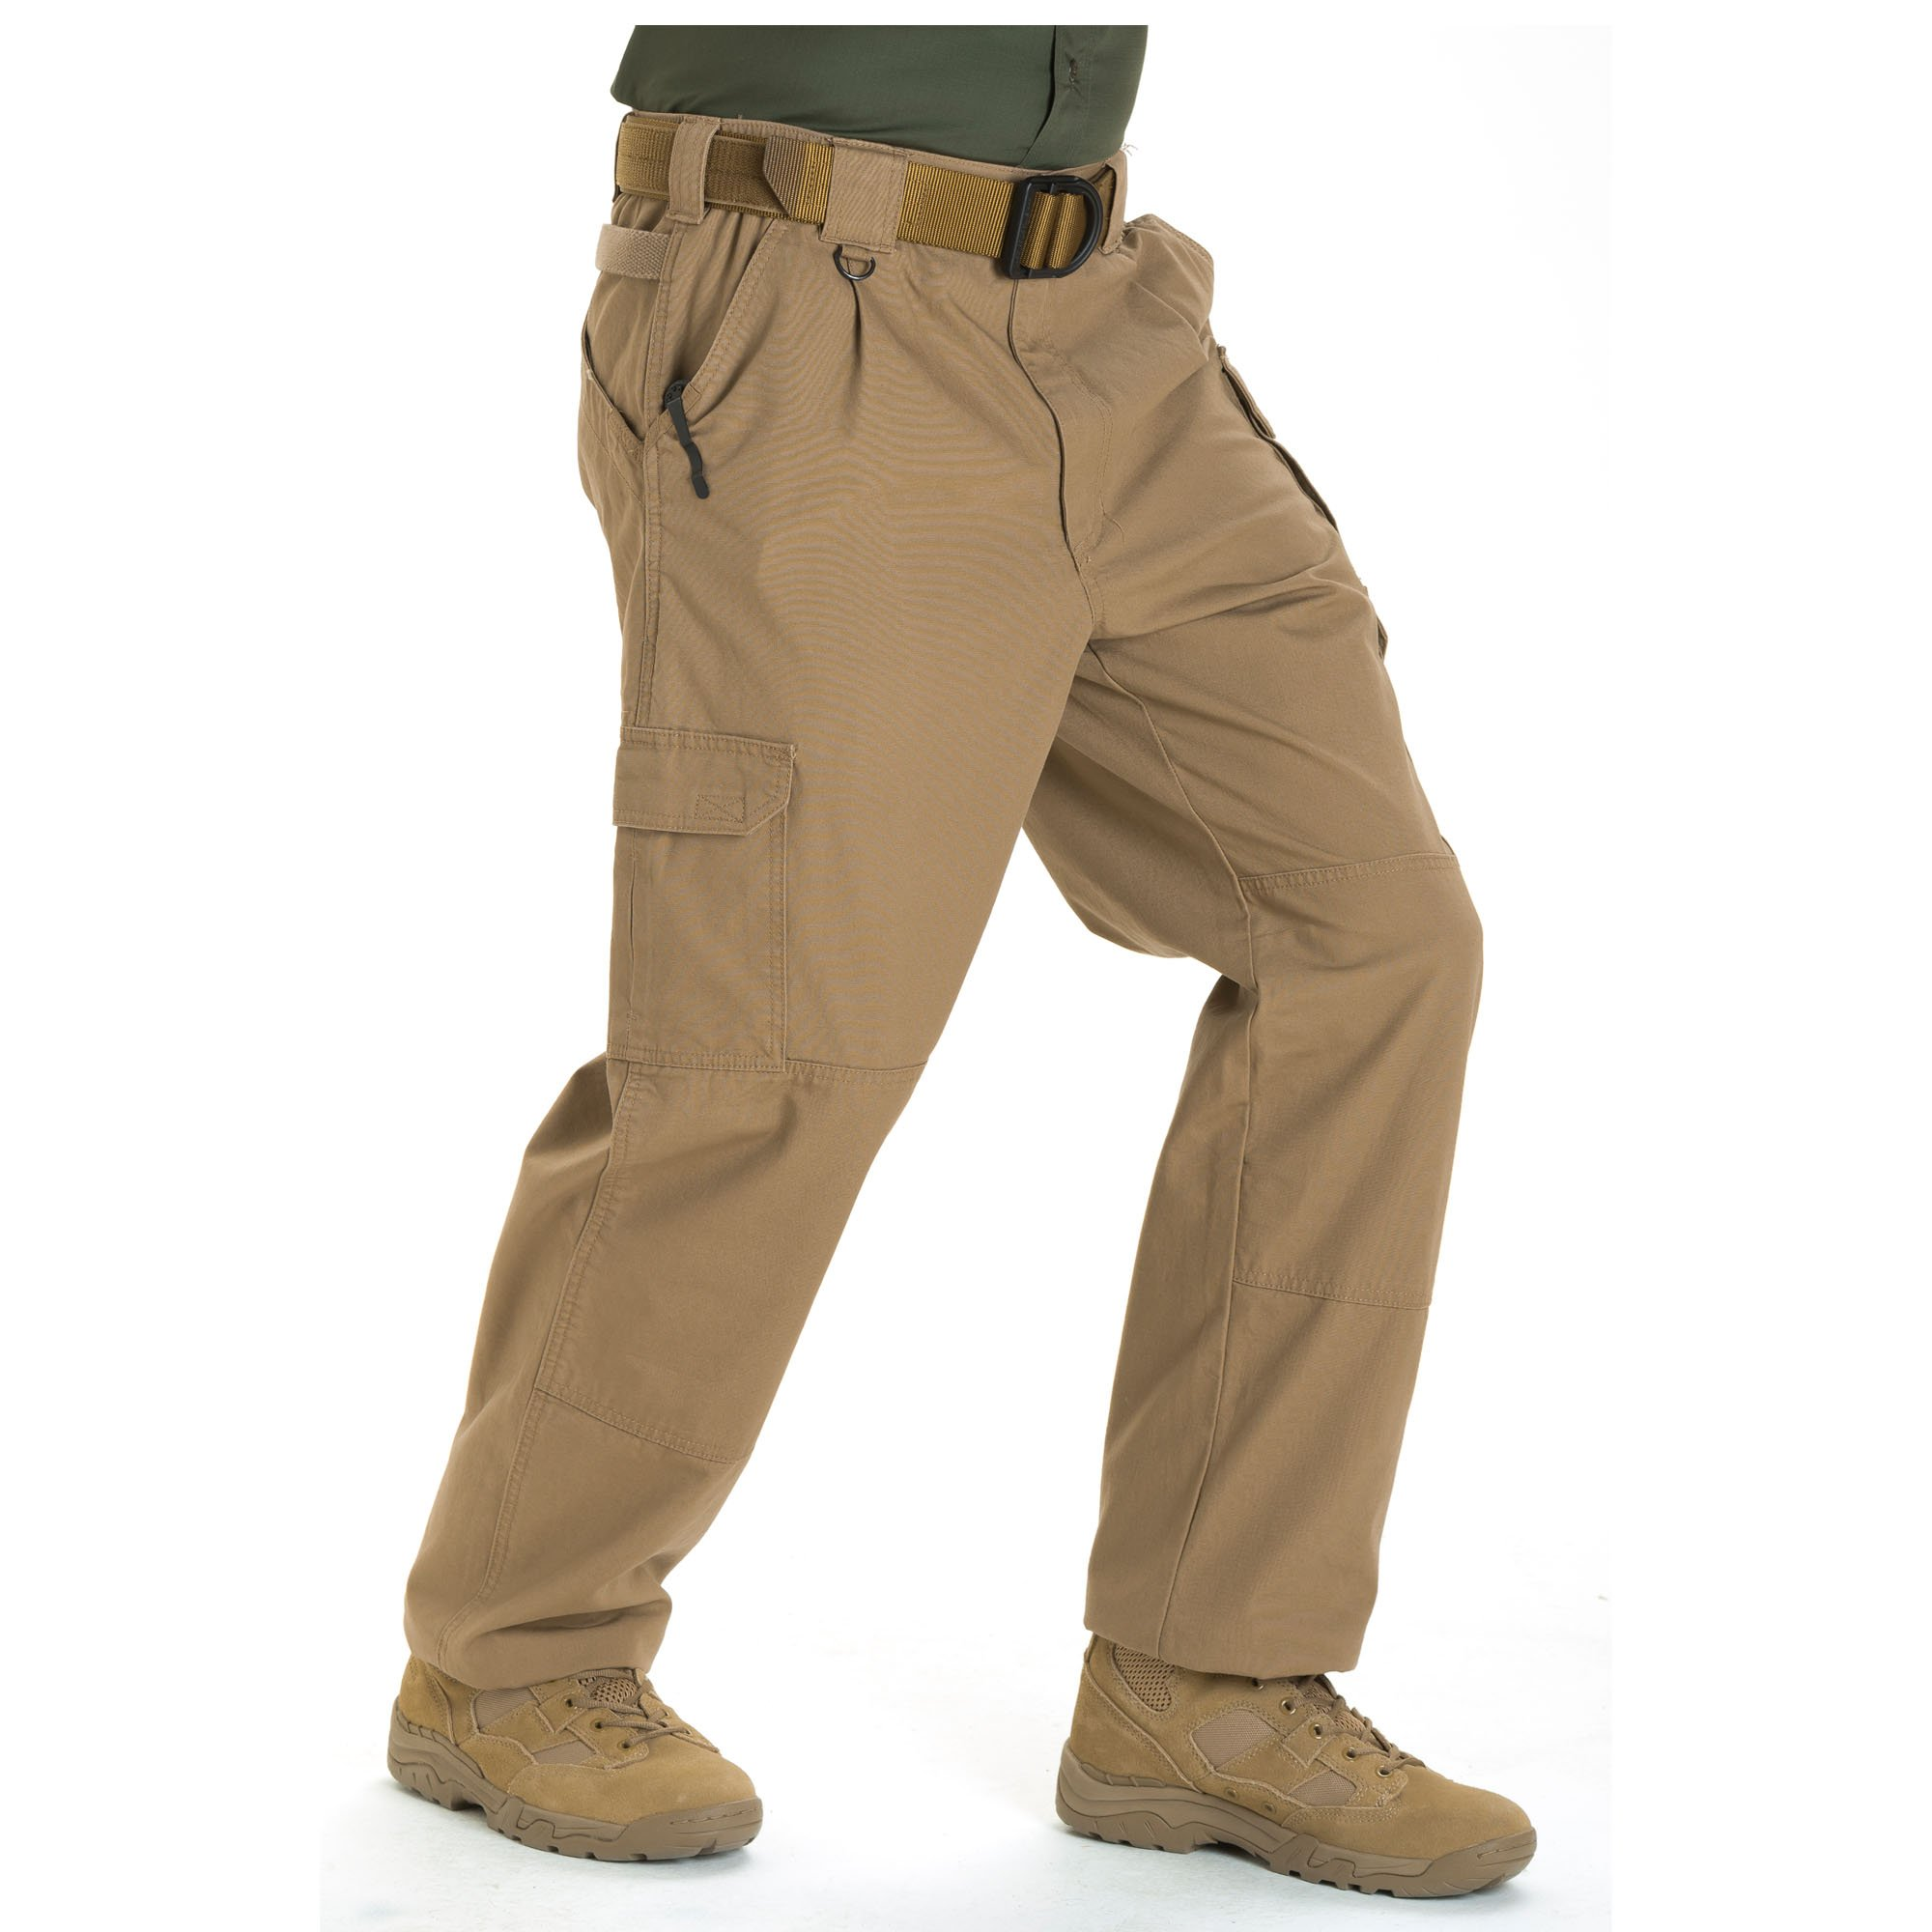 5.11 Tactical Men's Active Work Pants, Superior Fit, Double Reinforced, 100% Cotton, Style 74251 by 5.11